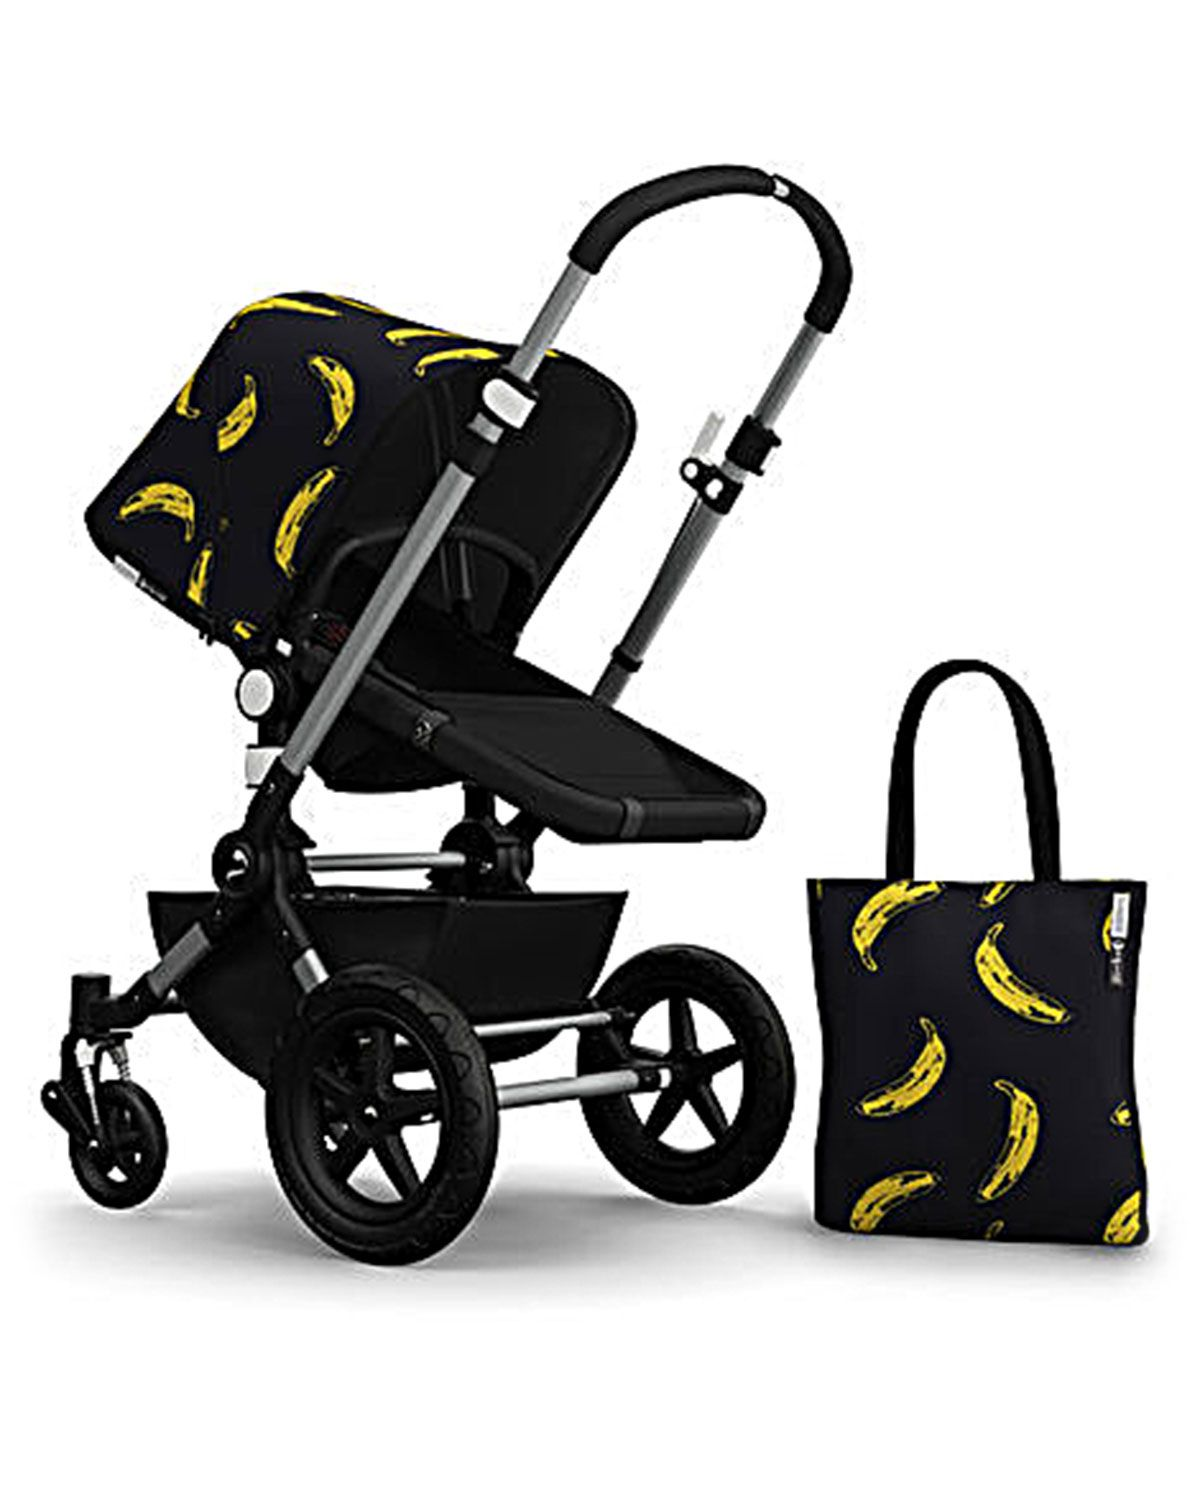 Andy Warhol Cars Bugaboo Cameleon//Cameleon3 Tailored Fabric Set